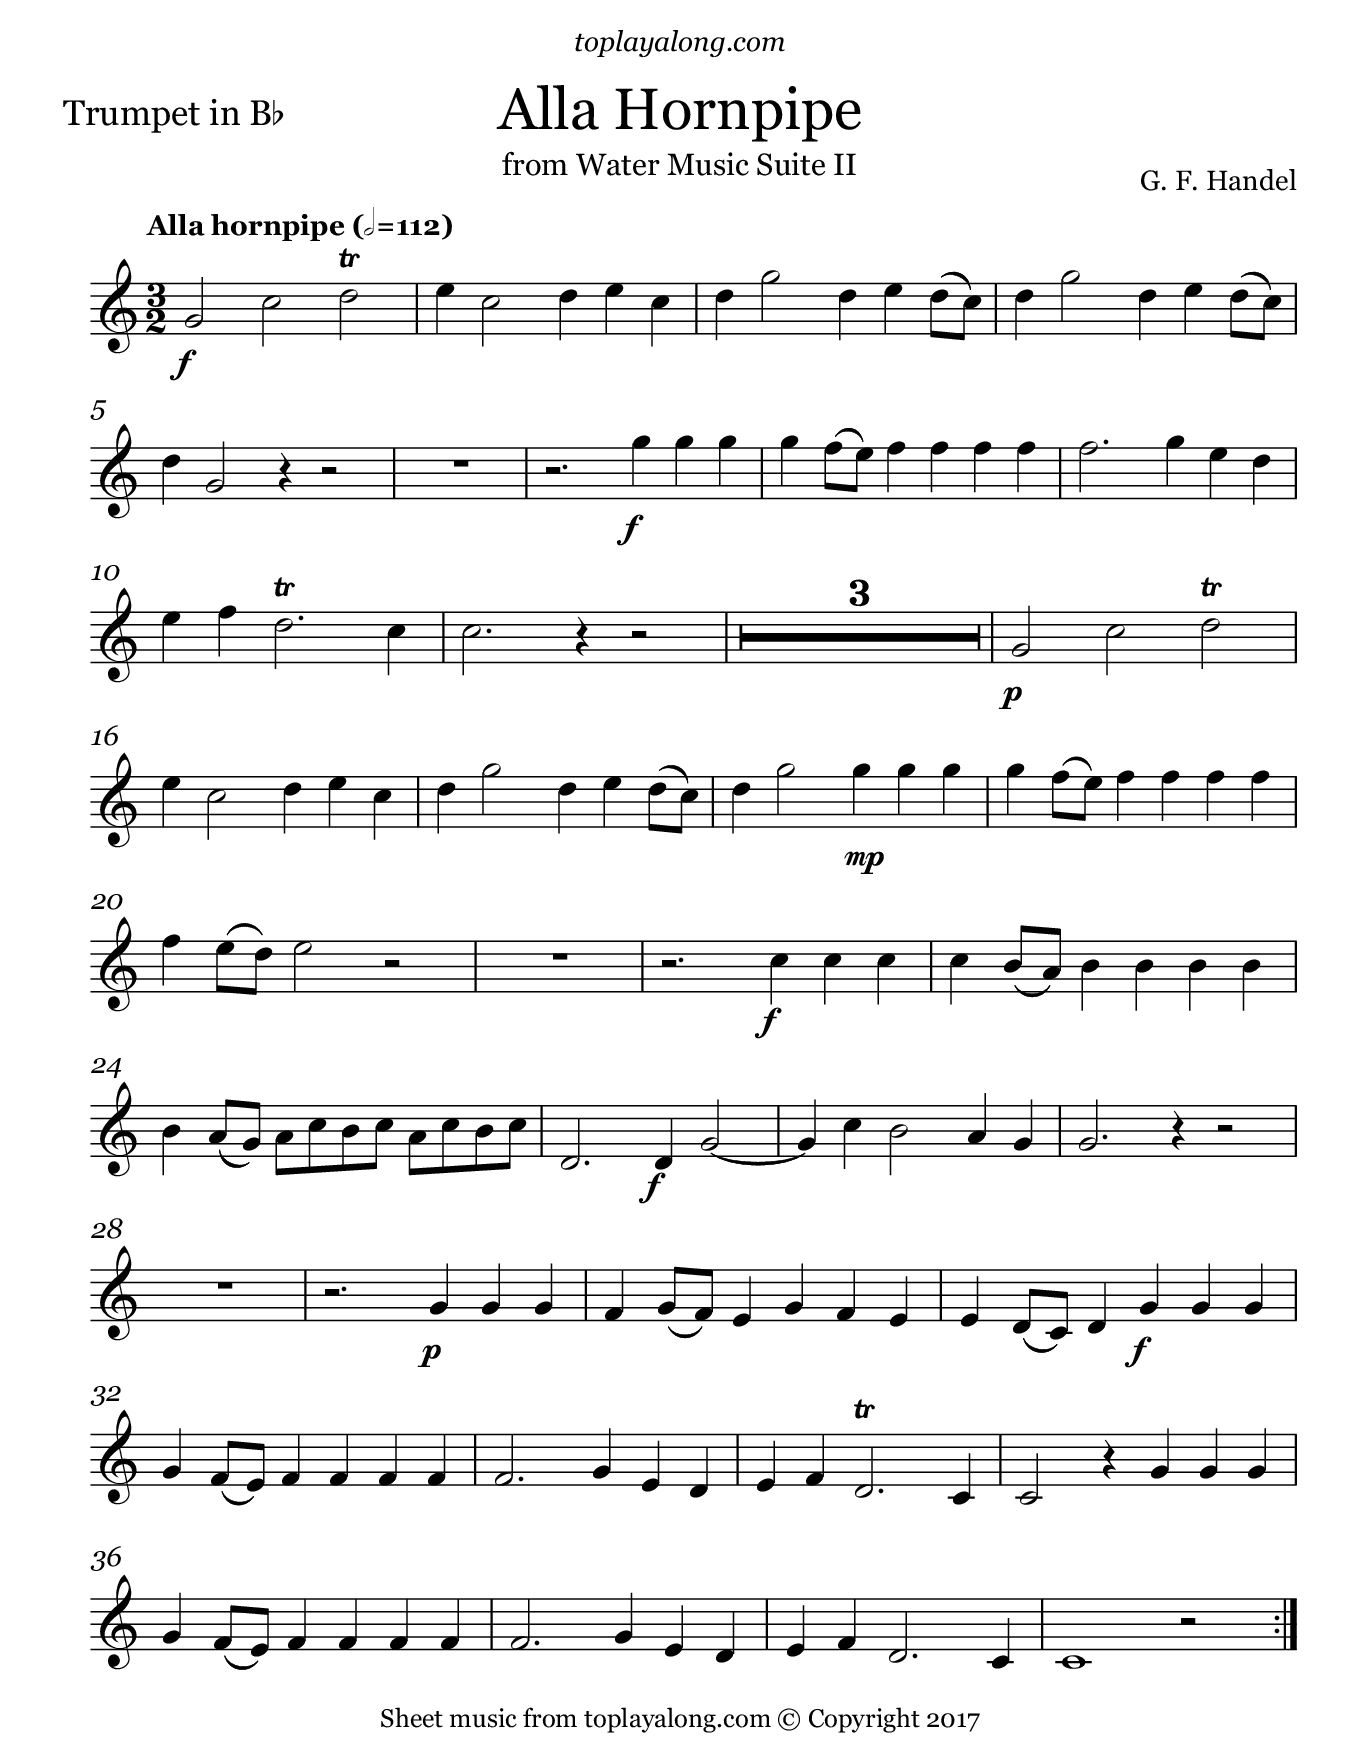 Alla Hornpipe from Water Music Suite II by Handel. Sheet music for Trumpet, page 1.